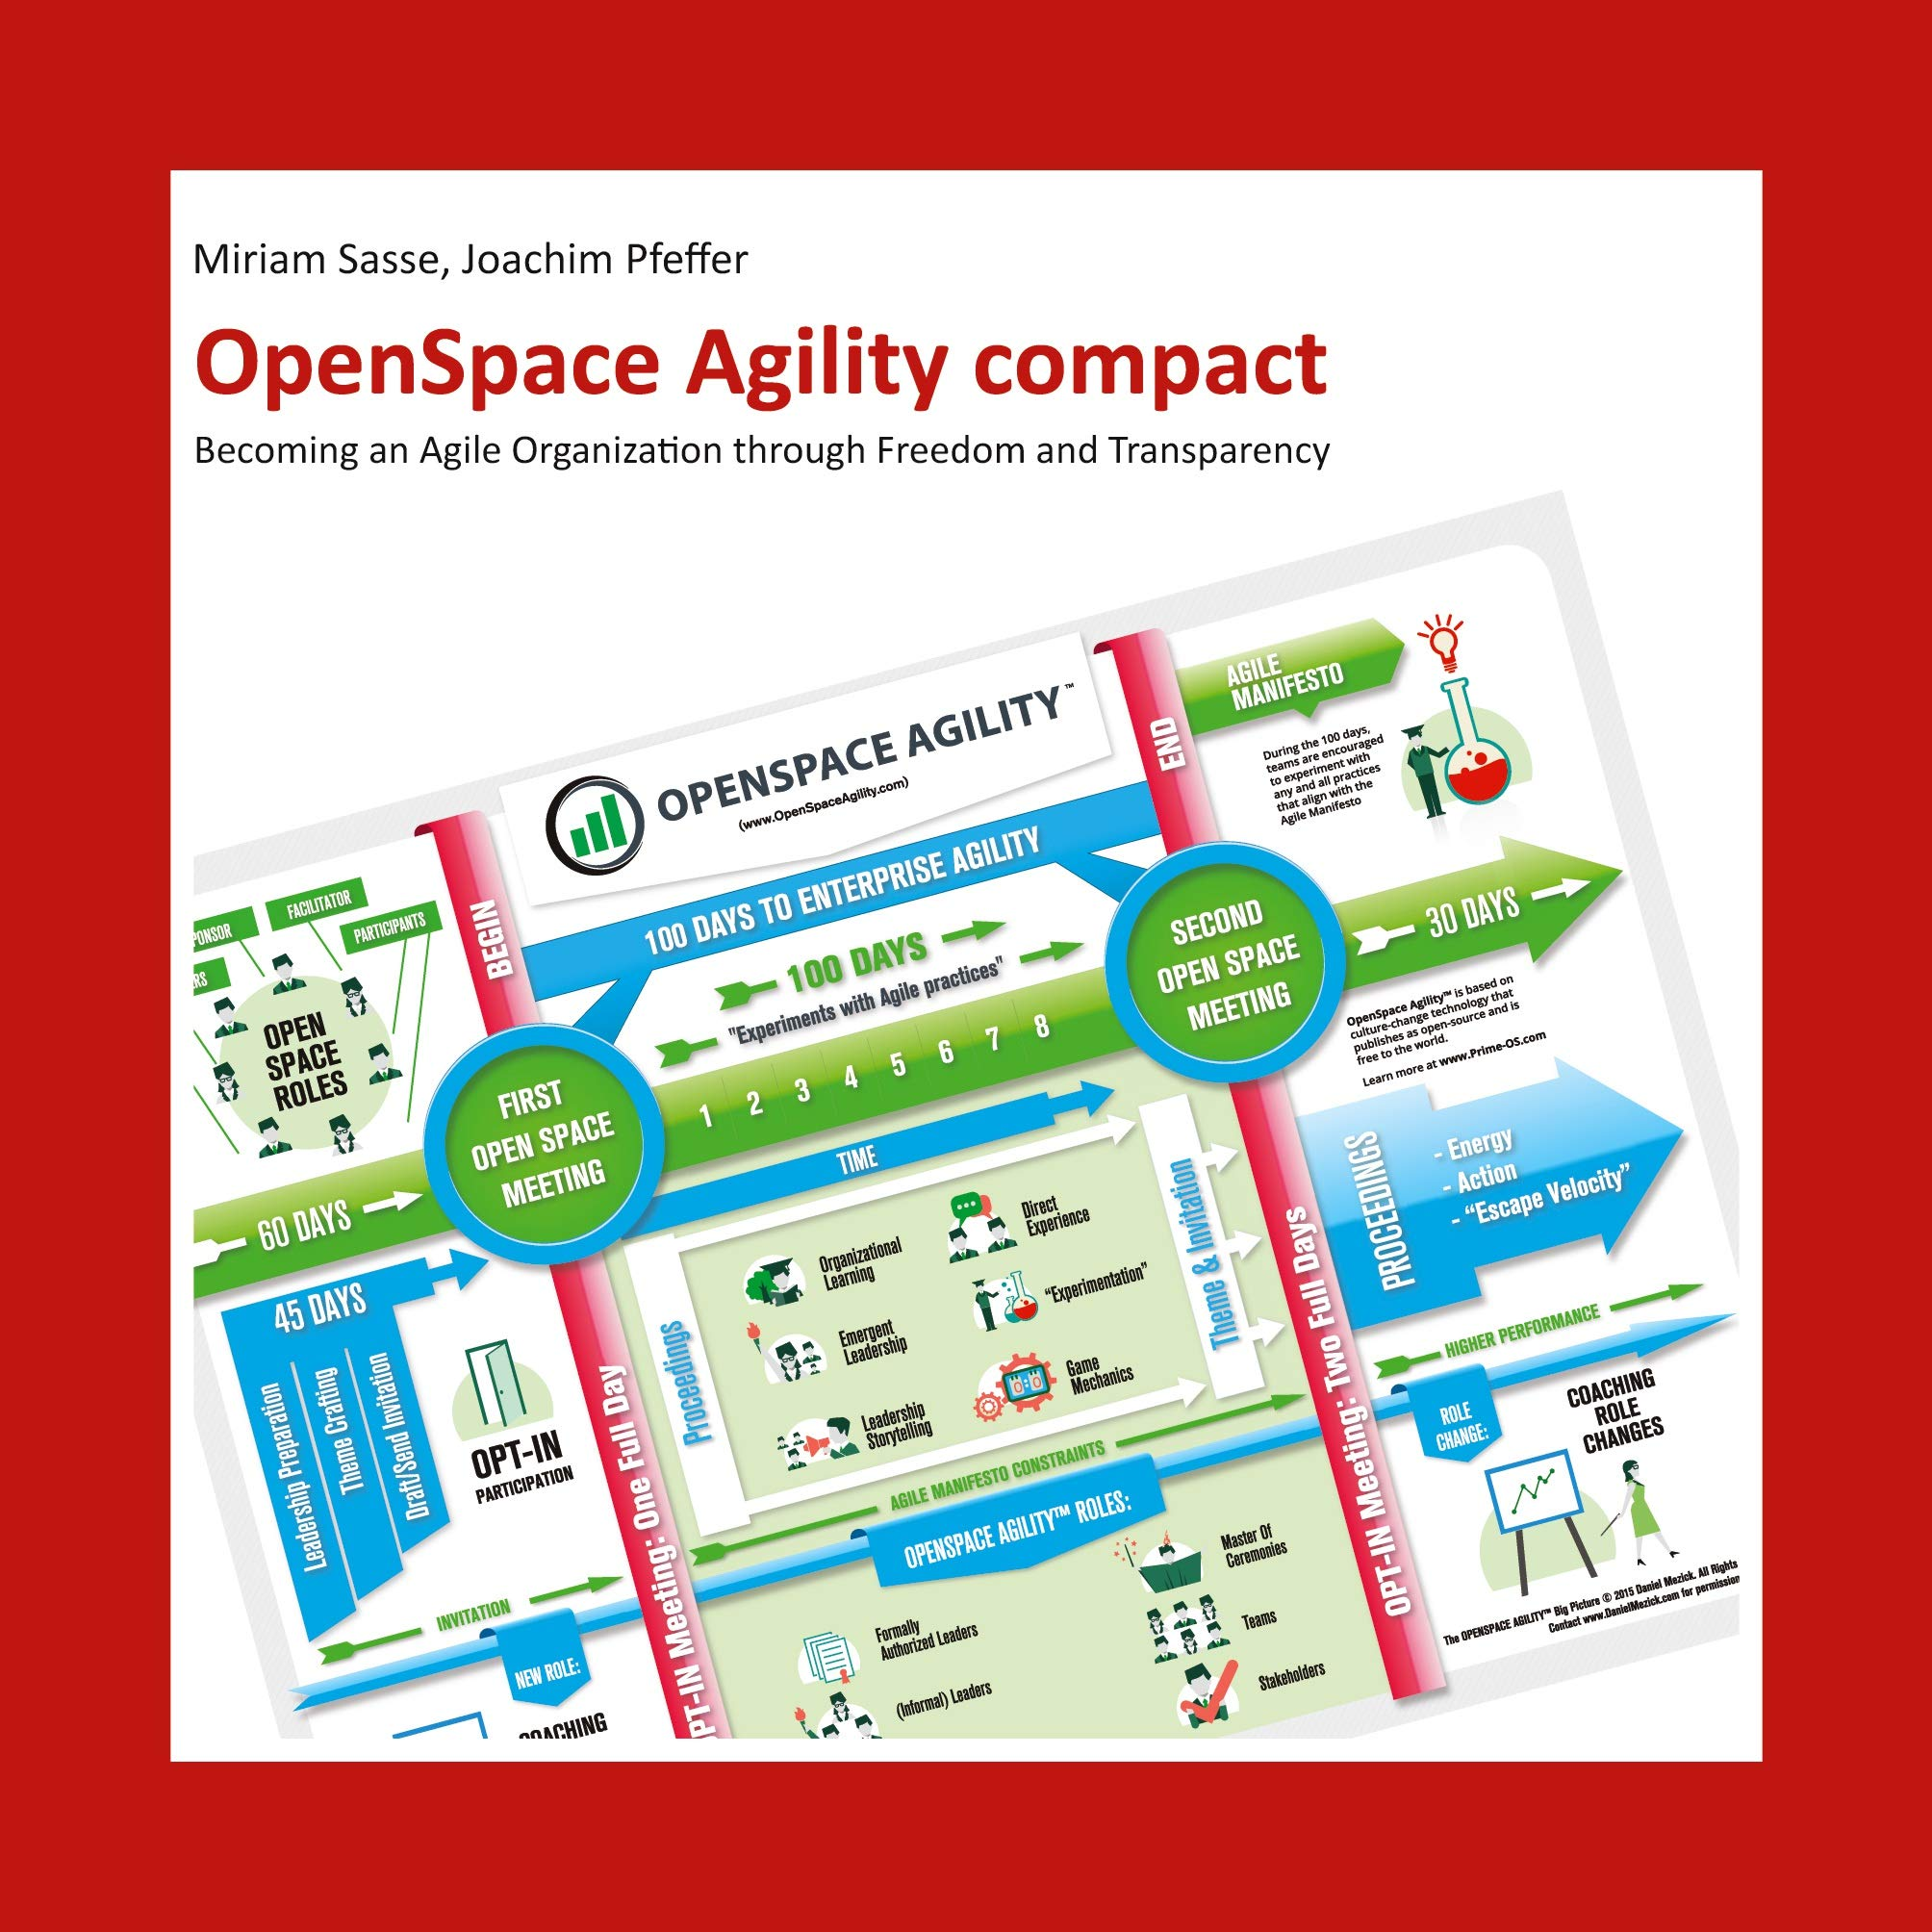 OpenSpace Agility compact: Becoming an Agile Organization through Freedom and Transparency